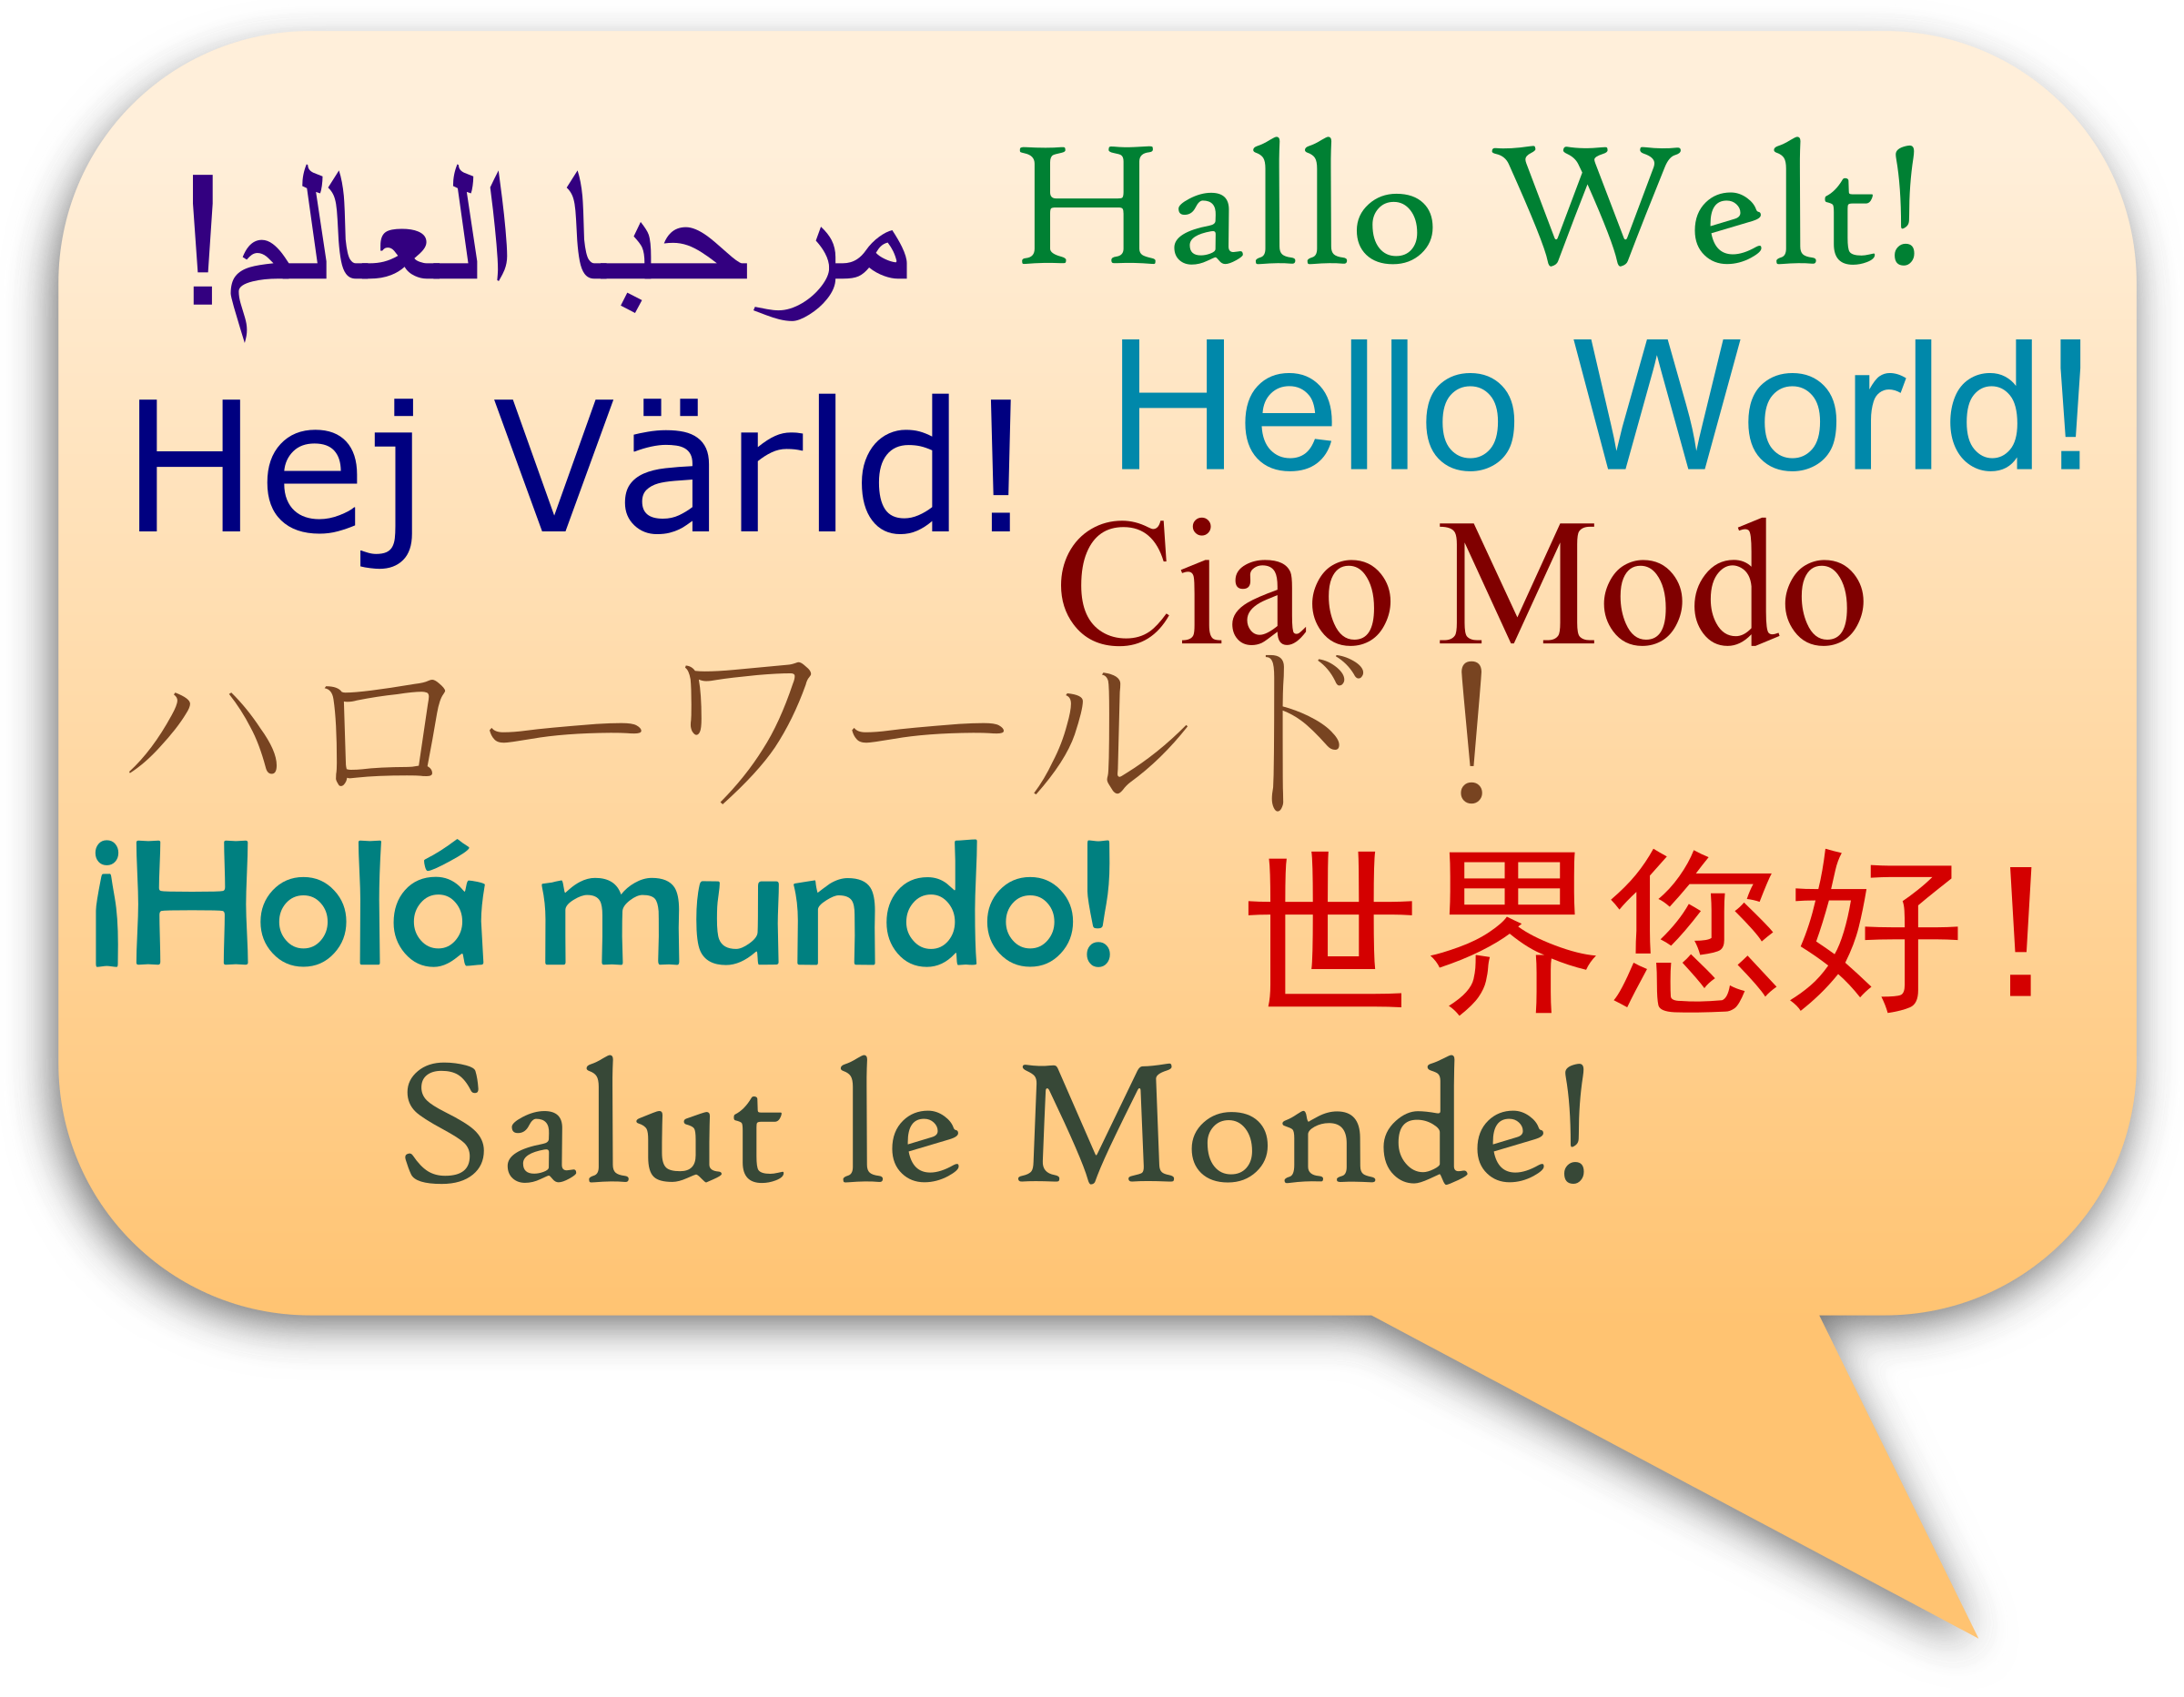 Language clipart. Hello world in several